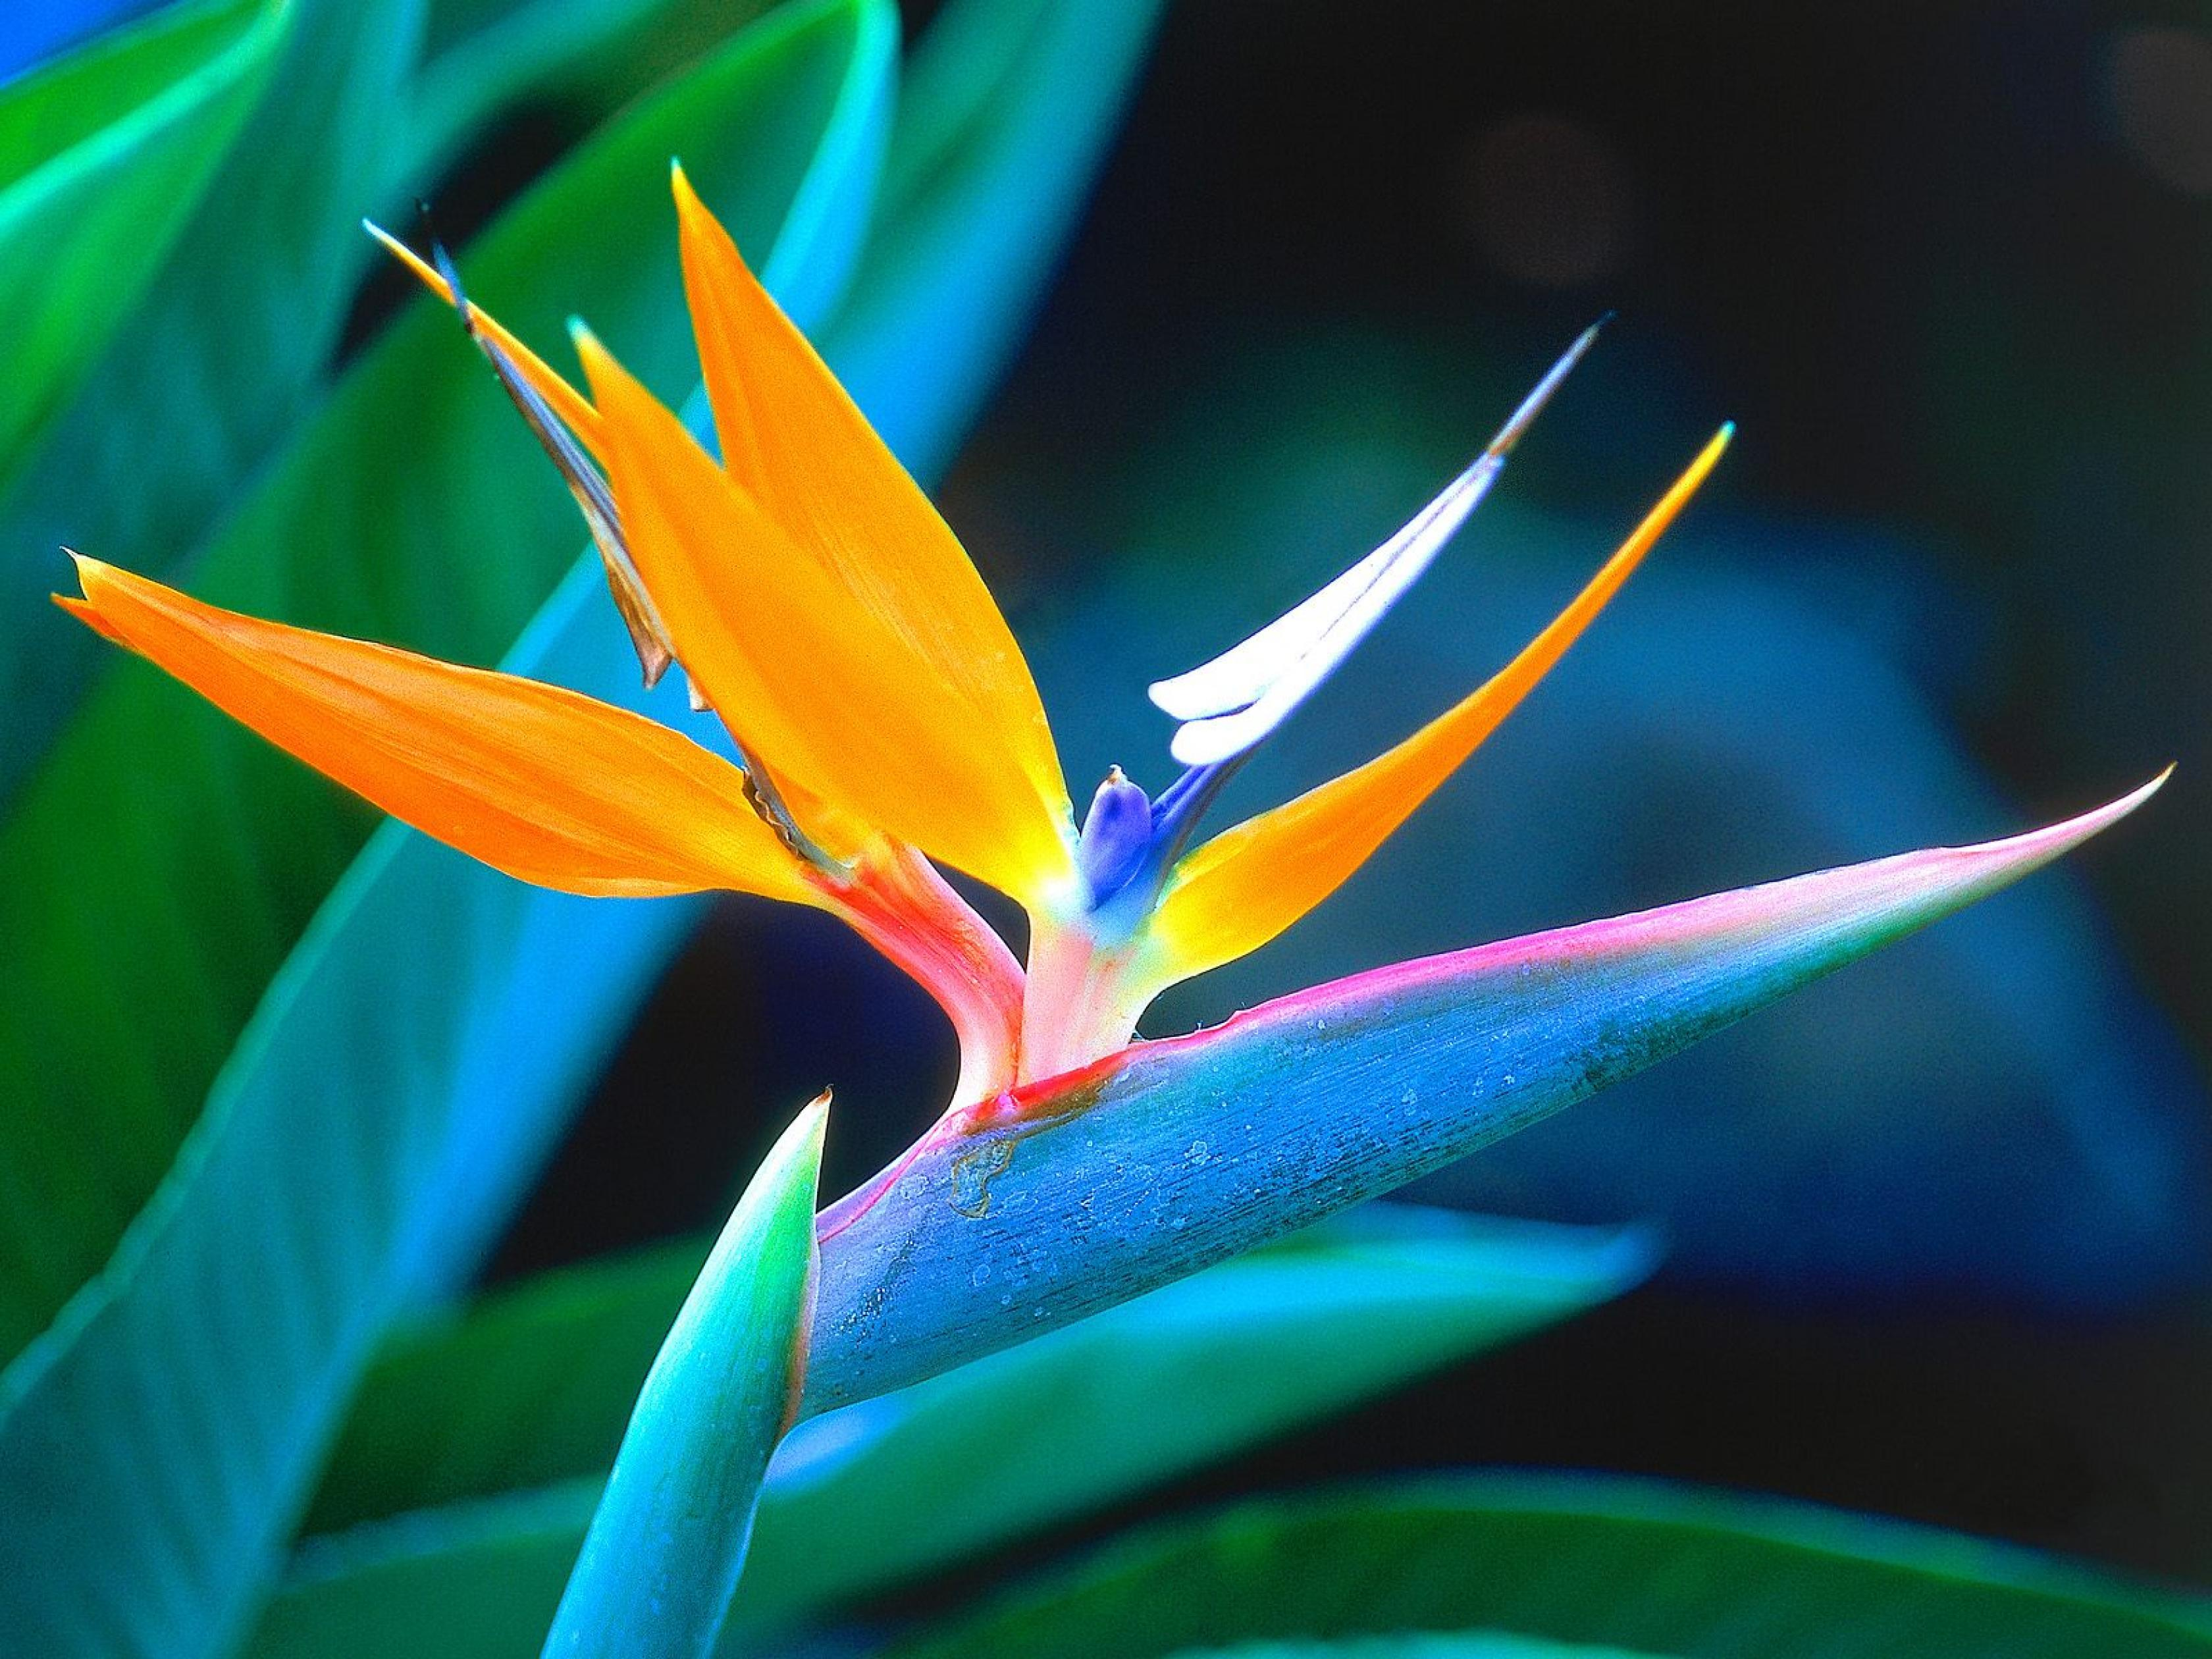 nature-flowers-south-africa-bird-of-paradise-strelitzia-crane-flower-wallpaper-1